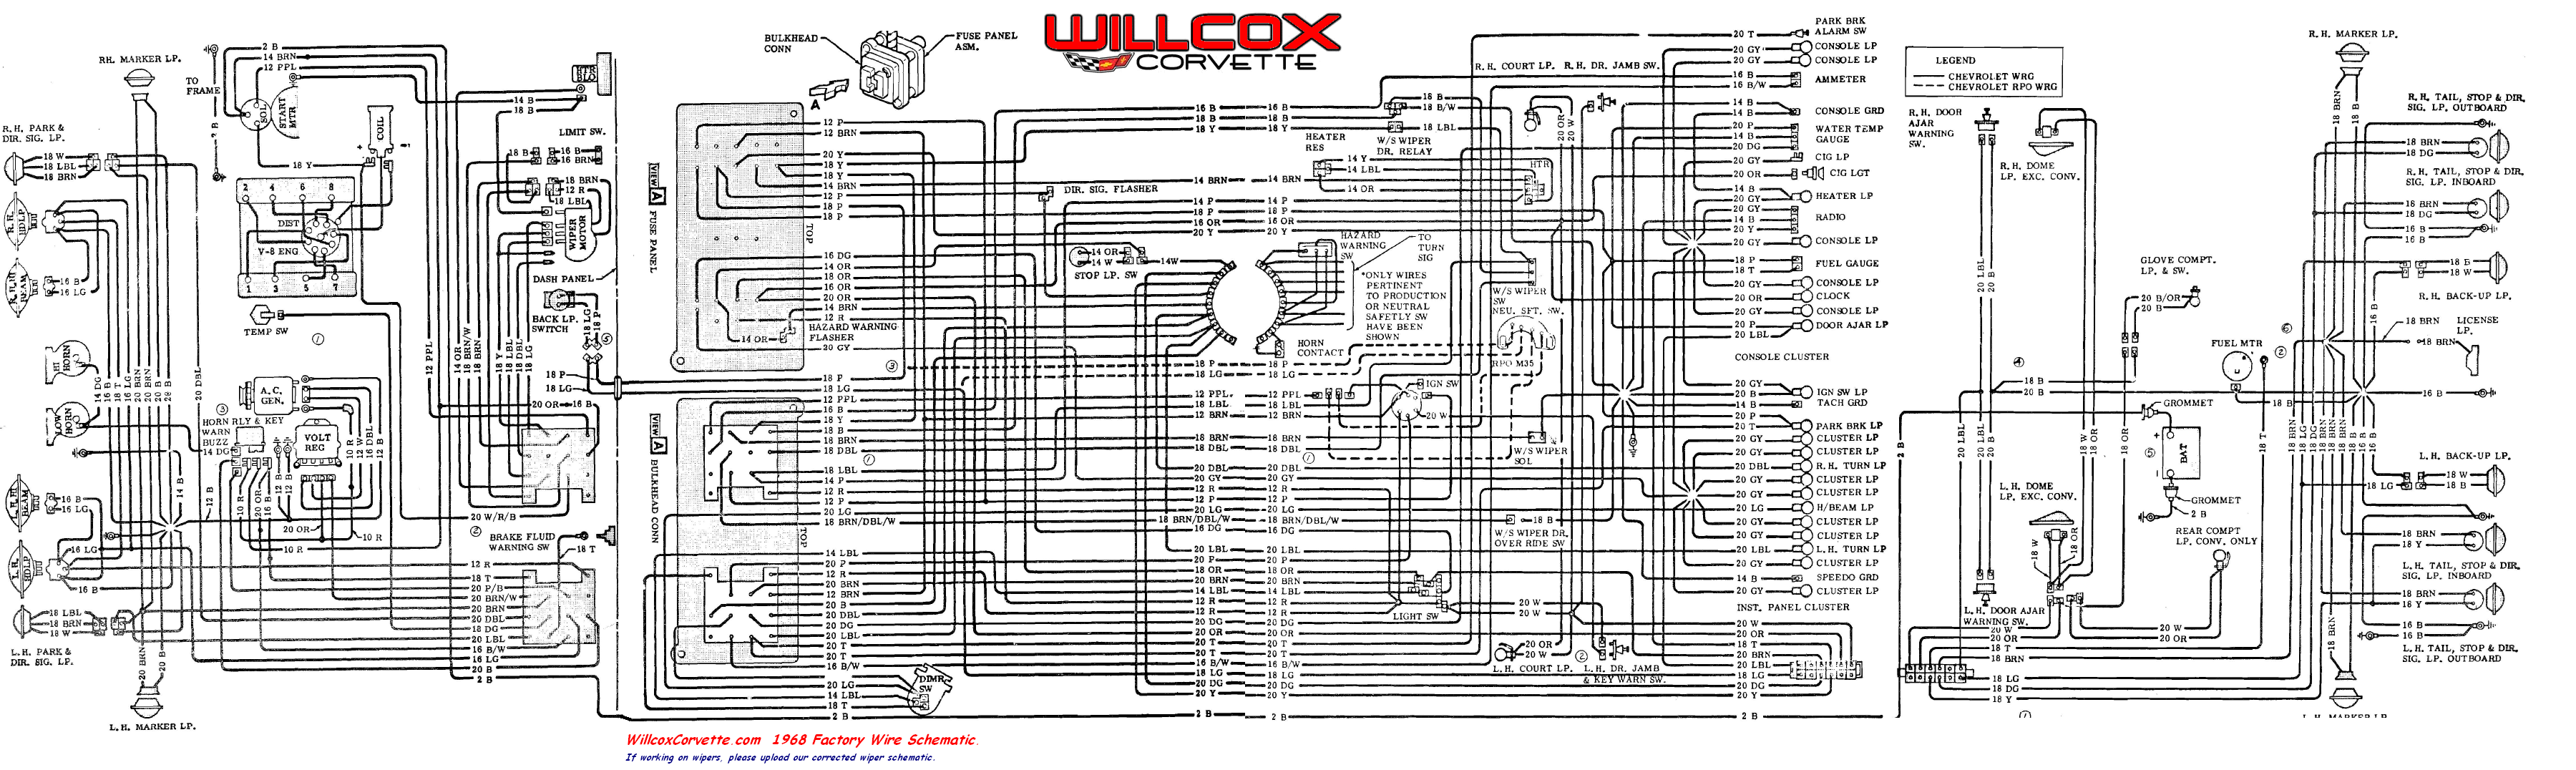 95 Corvette Wiring Diagram readingratnet